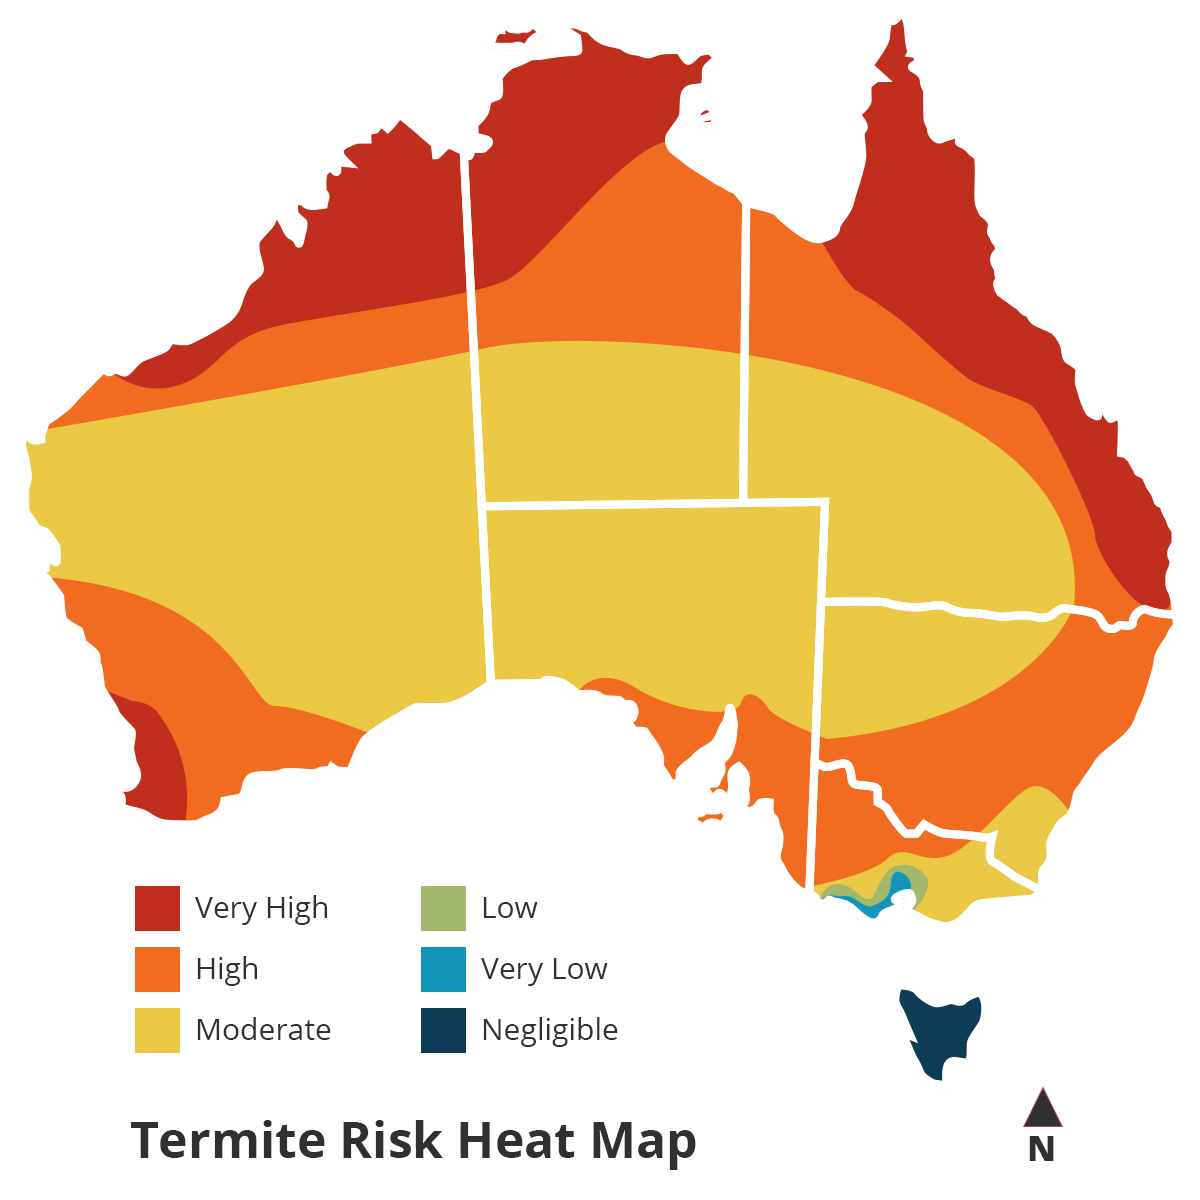 termite risk heat map